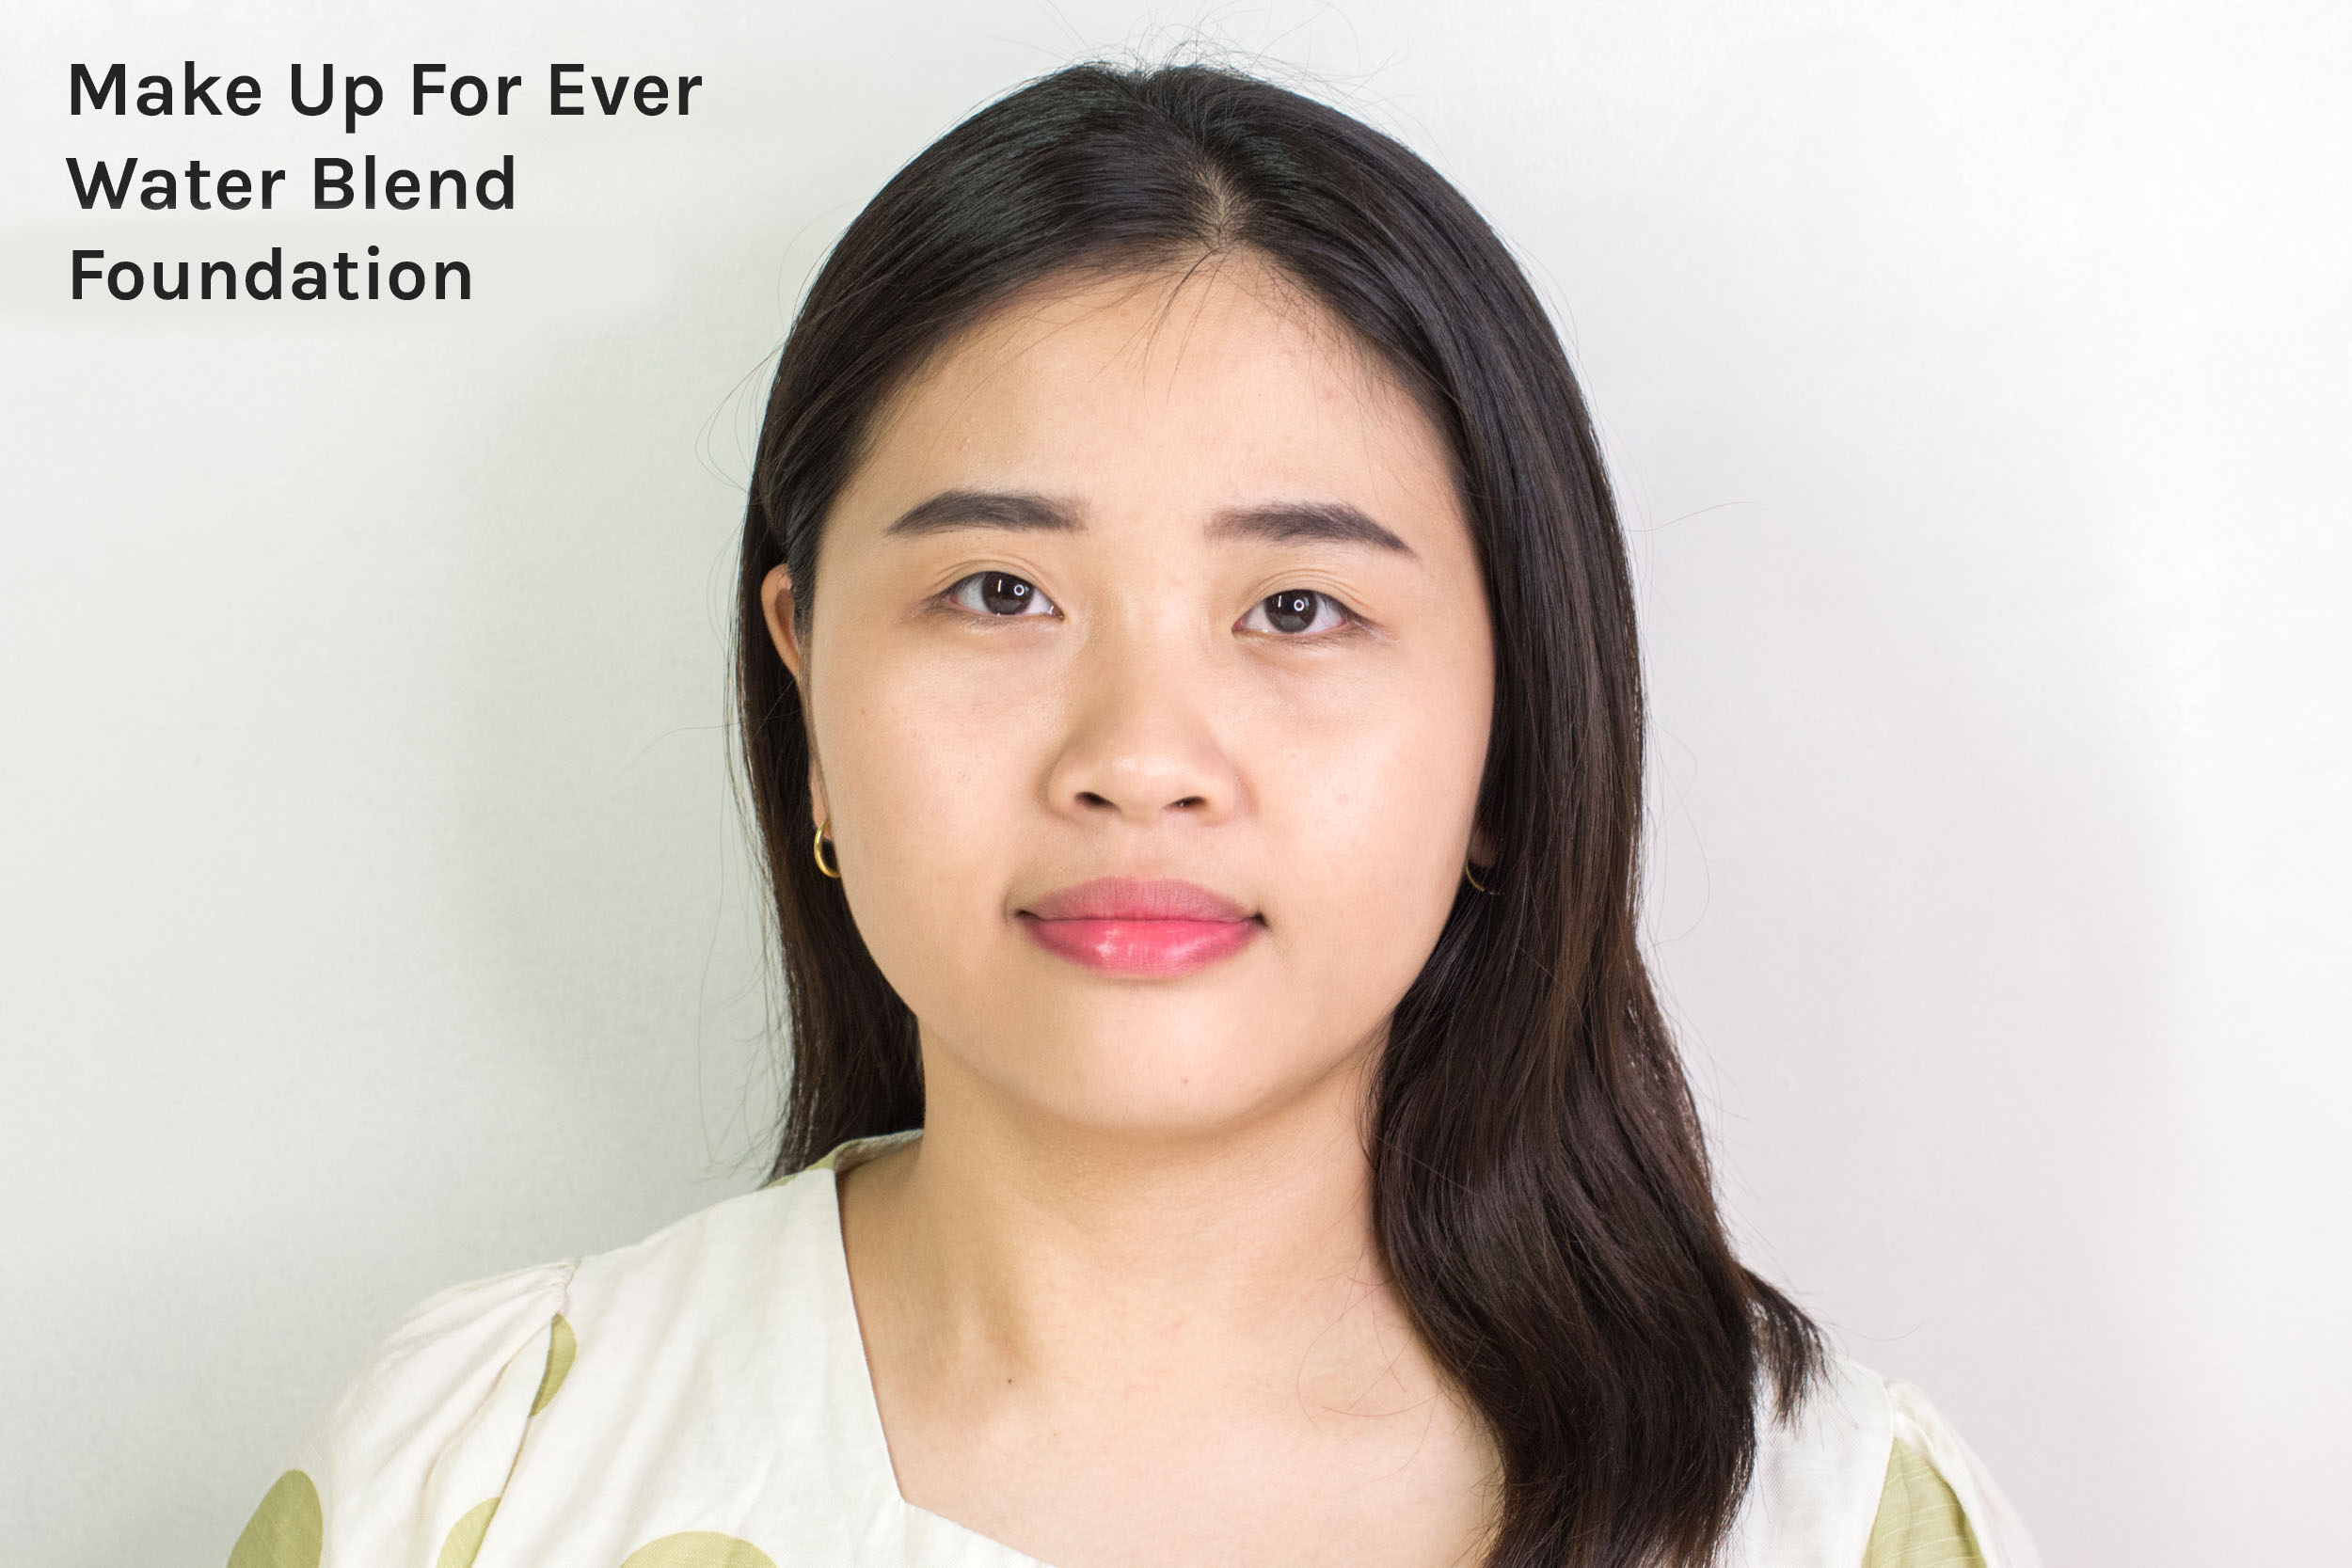 MUFE_lightweight-foundation_face-swatch_review-philippines_2019-4.jpg